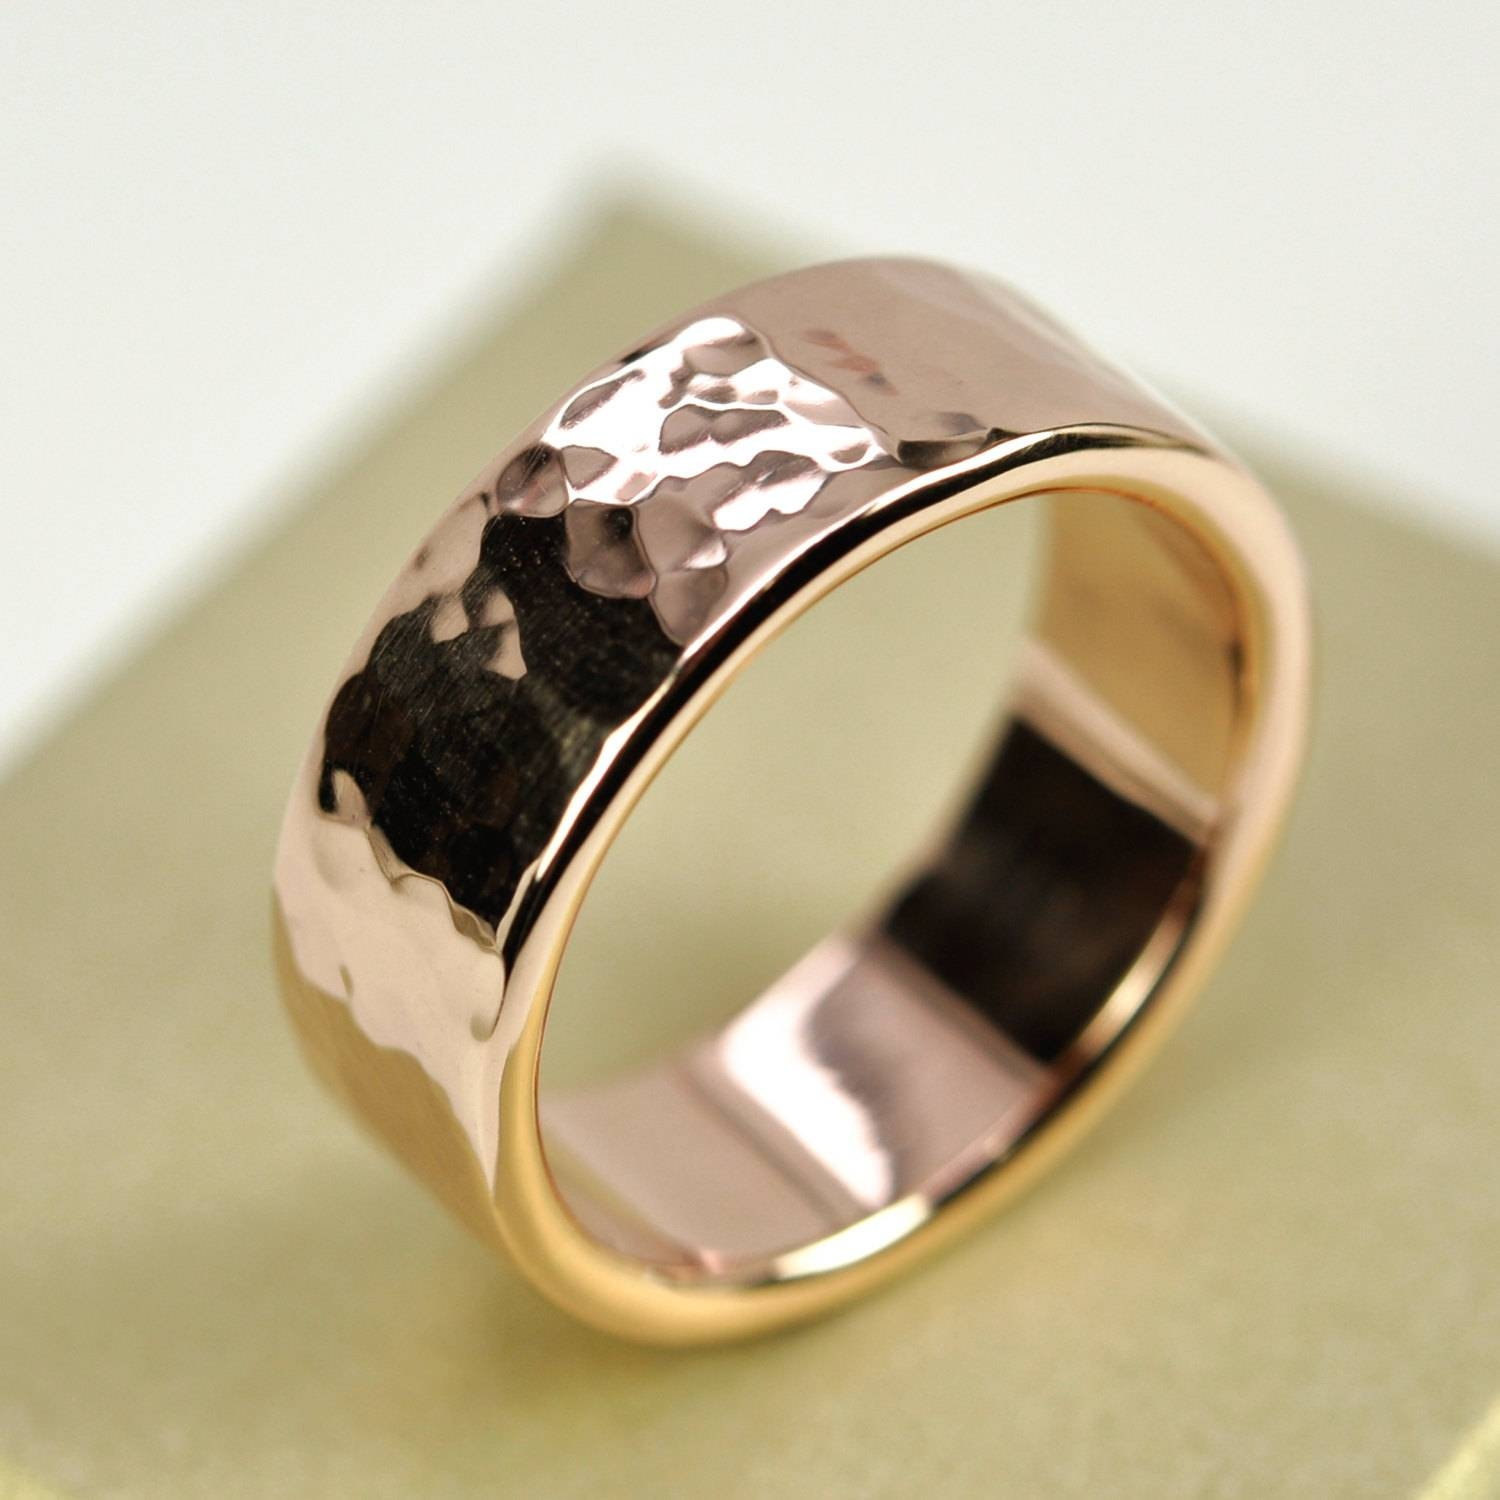 14K Rose Gold Mens Wedding Band Hammered Gold Ring 8Mm Wide Within Hammered Rose Gold Wedding Bands (View 2 of 15)